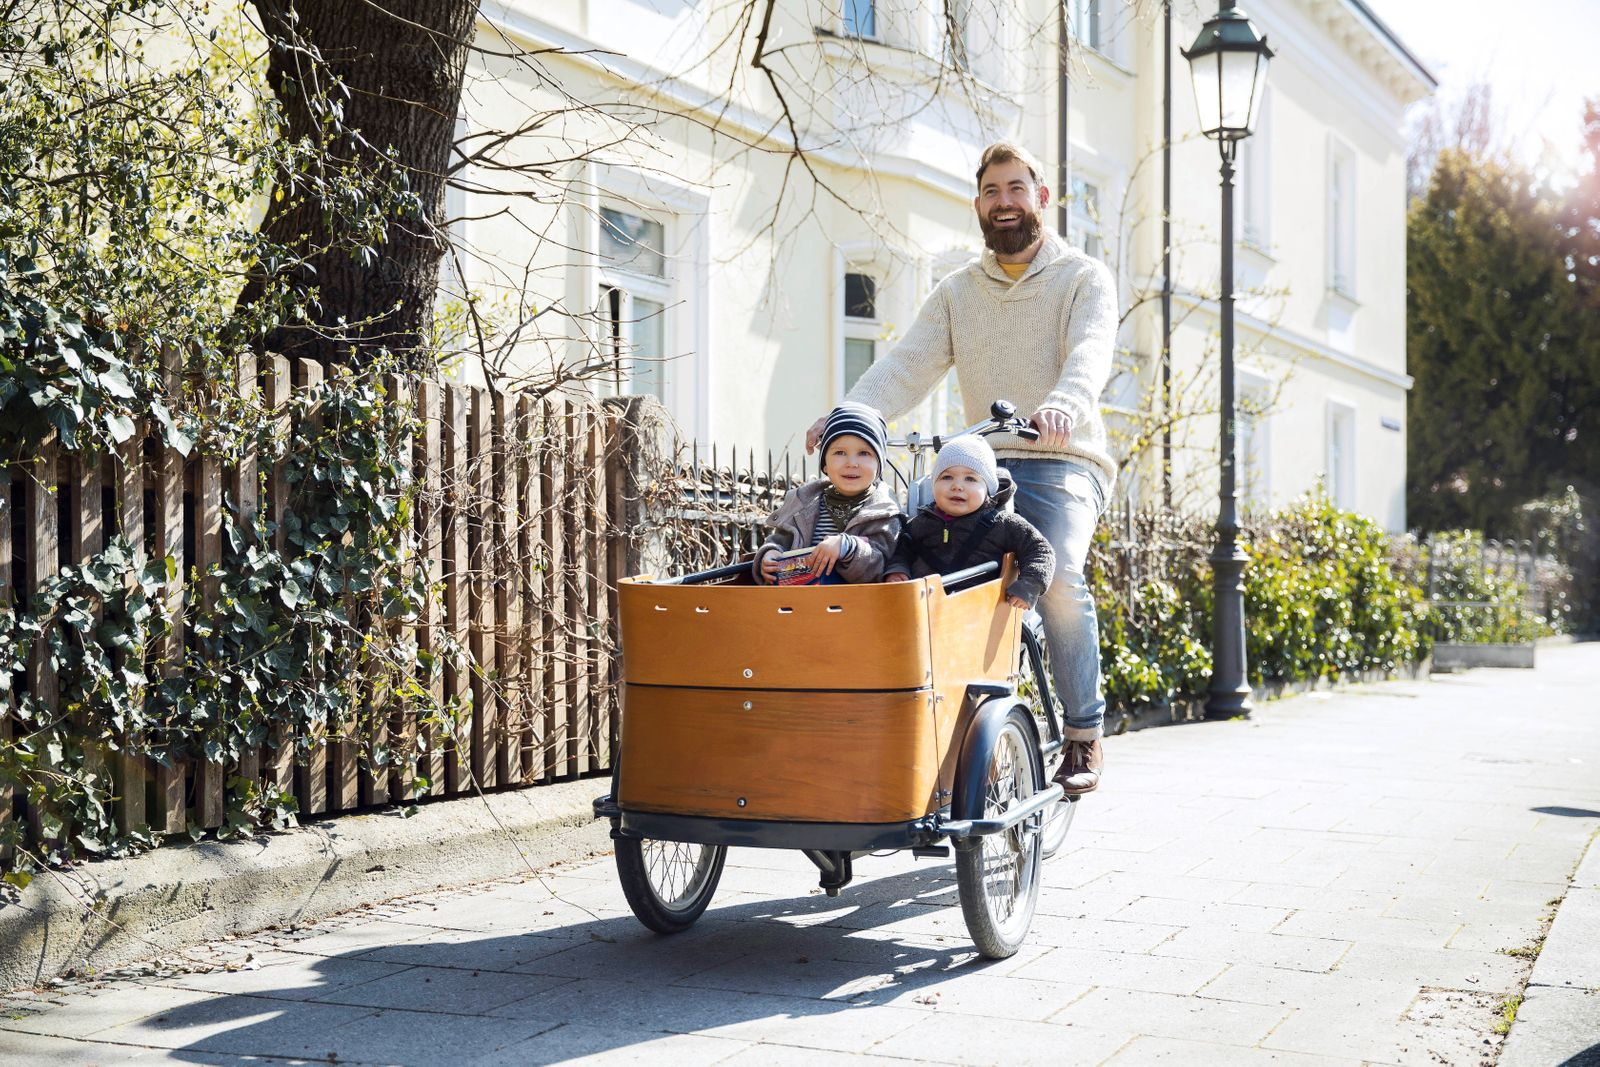 Happy father with two children riding cargo bike in the city model released Symbolfoto PUBLICATIONxINxGERxSUIxAUTxHUNxO